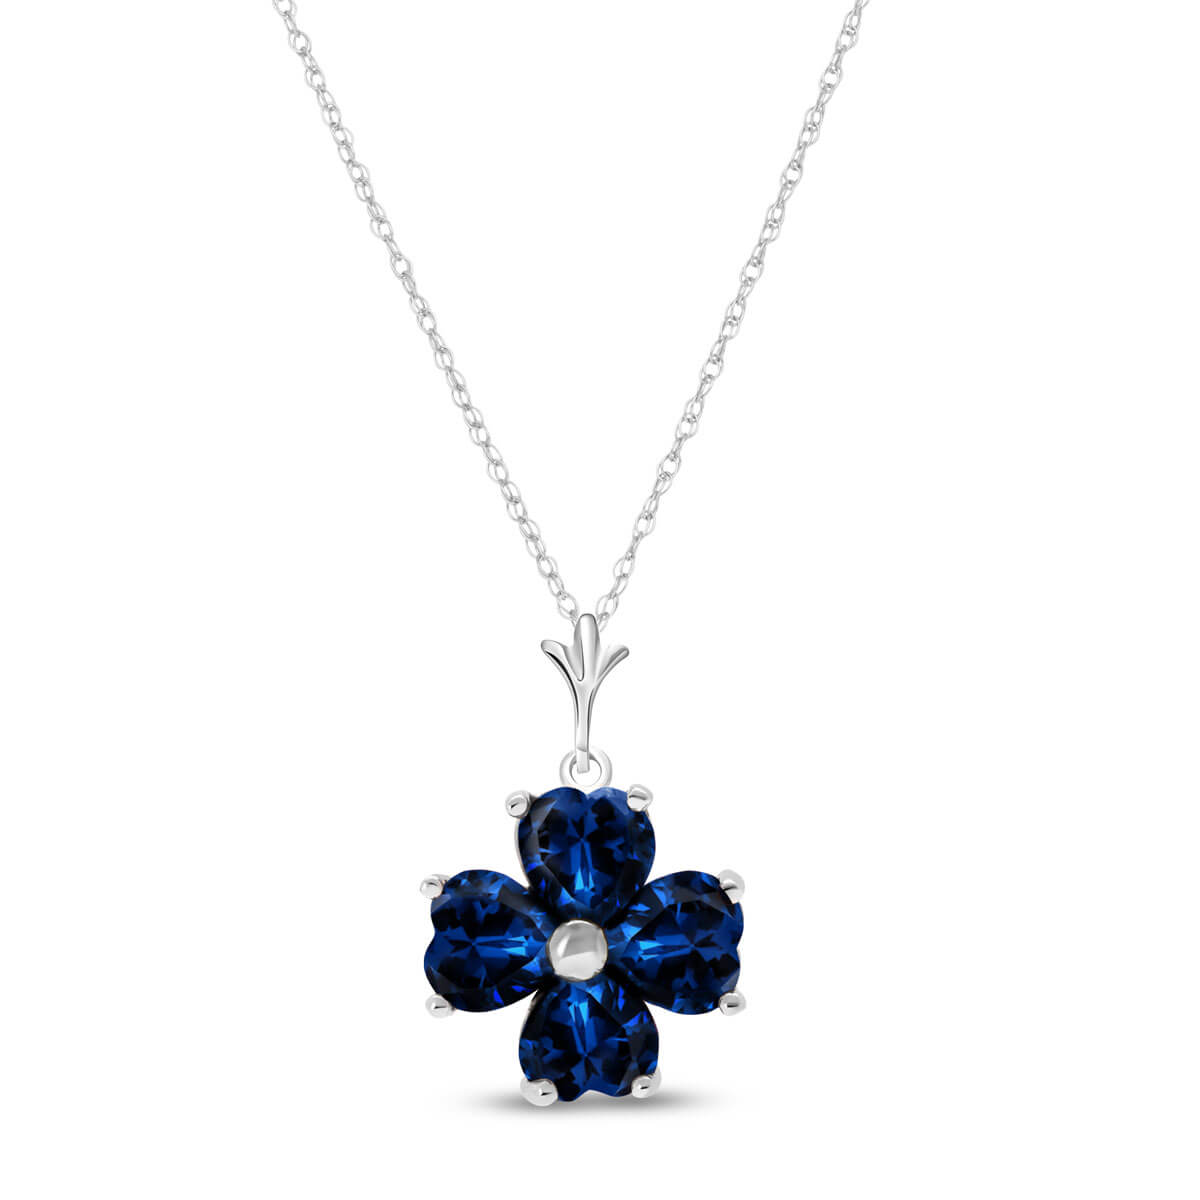 Sapphire Four Leaf Clover Pendant Necklace 3.6 ctw in 9ct White Gold